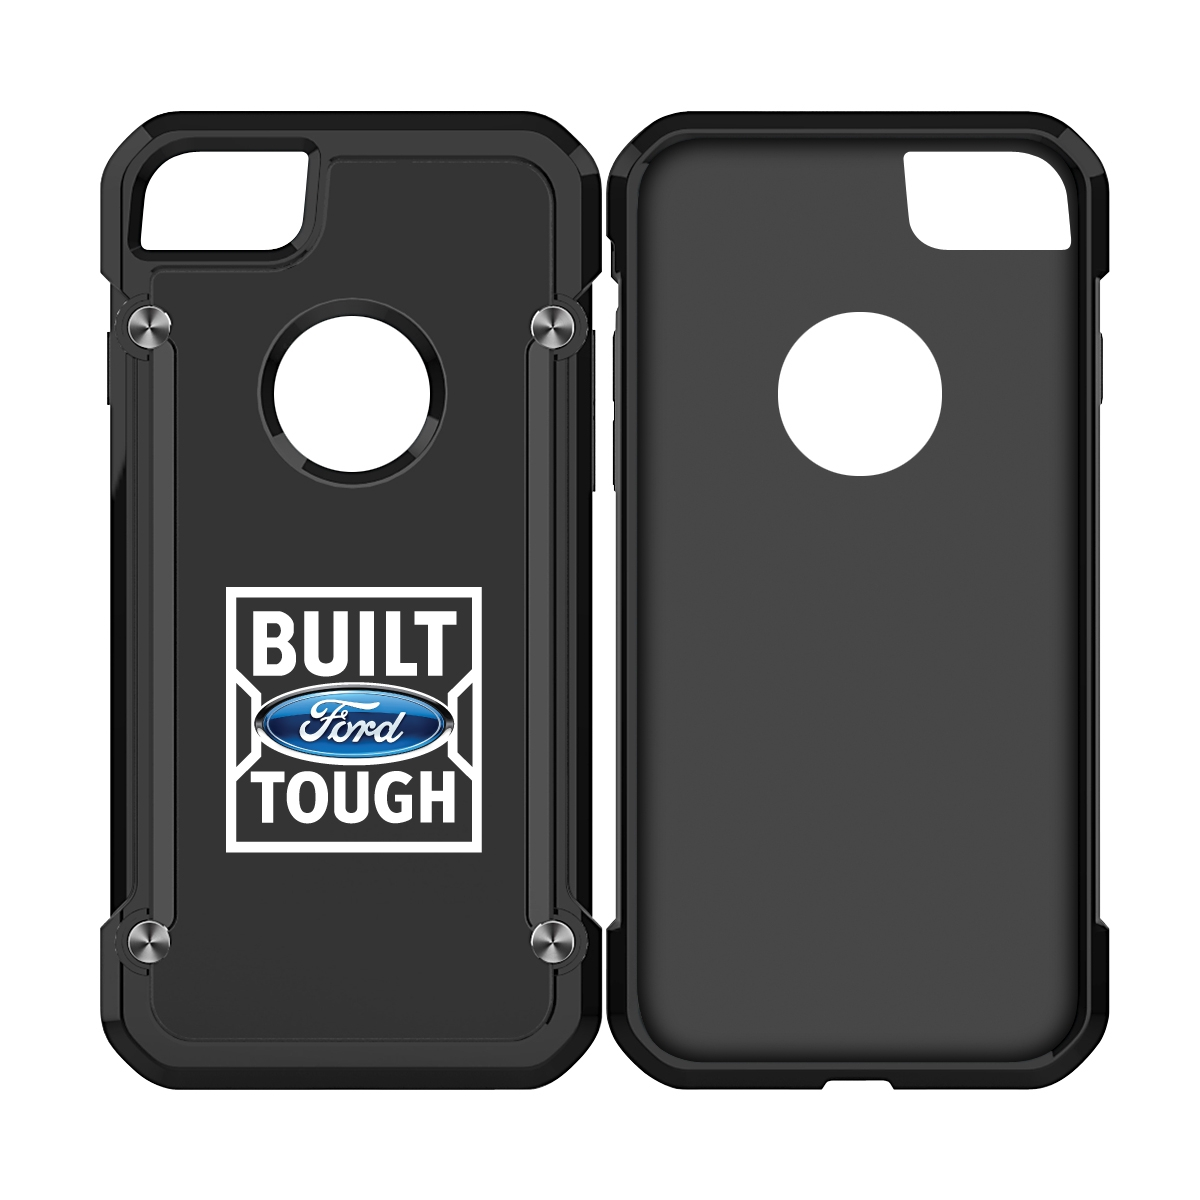 Ford Built Ford Tough iPhone 7 iPhone 8 TPU Shockproof Clear Cell Phone Case